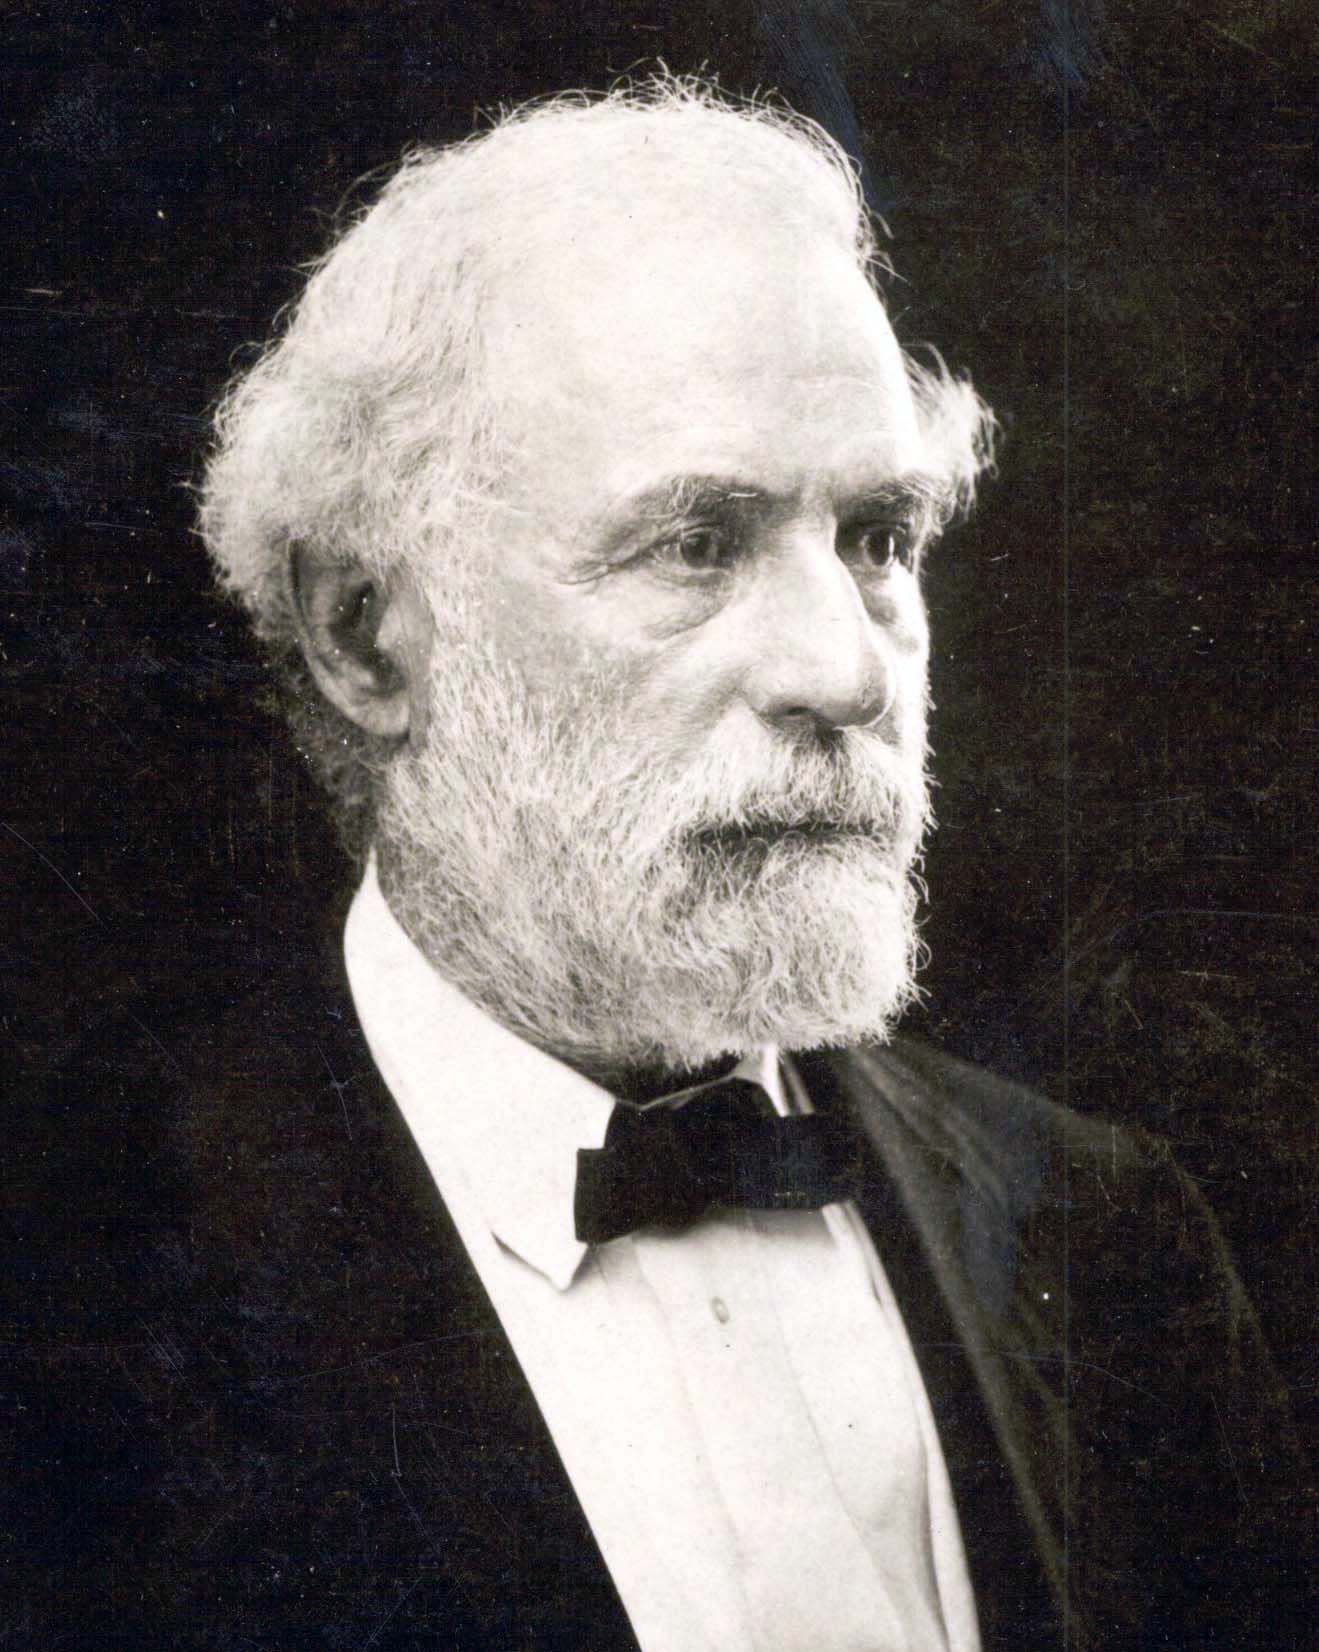 a biography of robert edward lee Enjoy the best robert e lee quotes at brainyquote quotations by robert e lee, american soldier, born january 19, 1807 share with your friends.